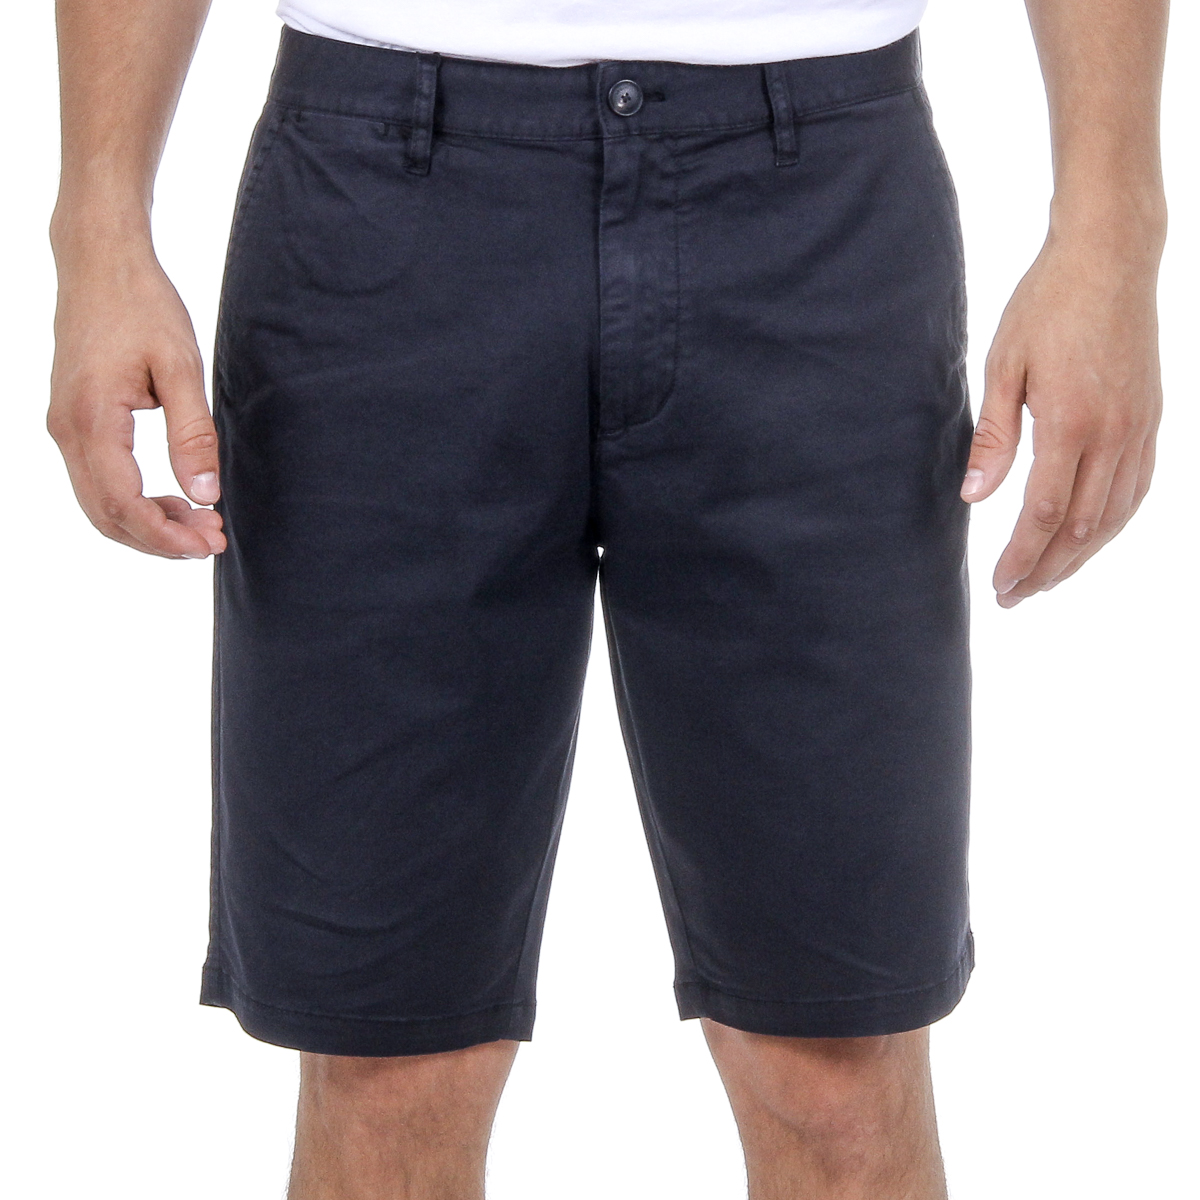 Primary image for Armani Jeans Mens Shorts Blue 3Y6S31 6NEDZ 0561